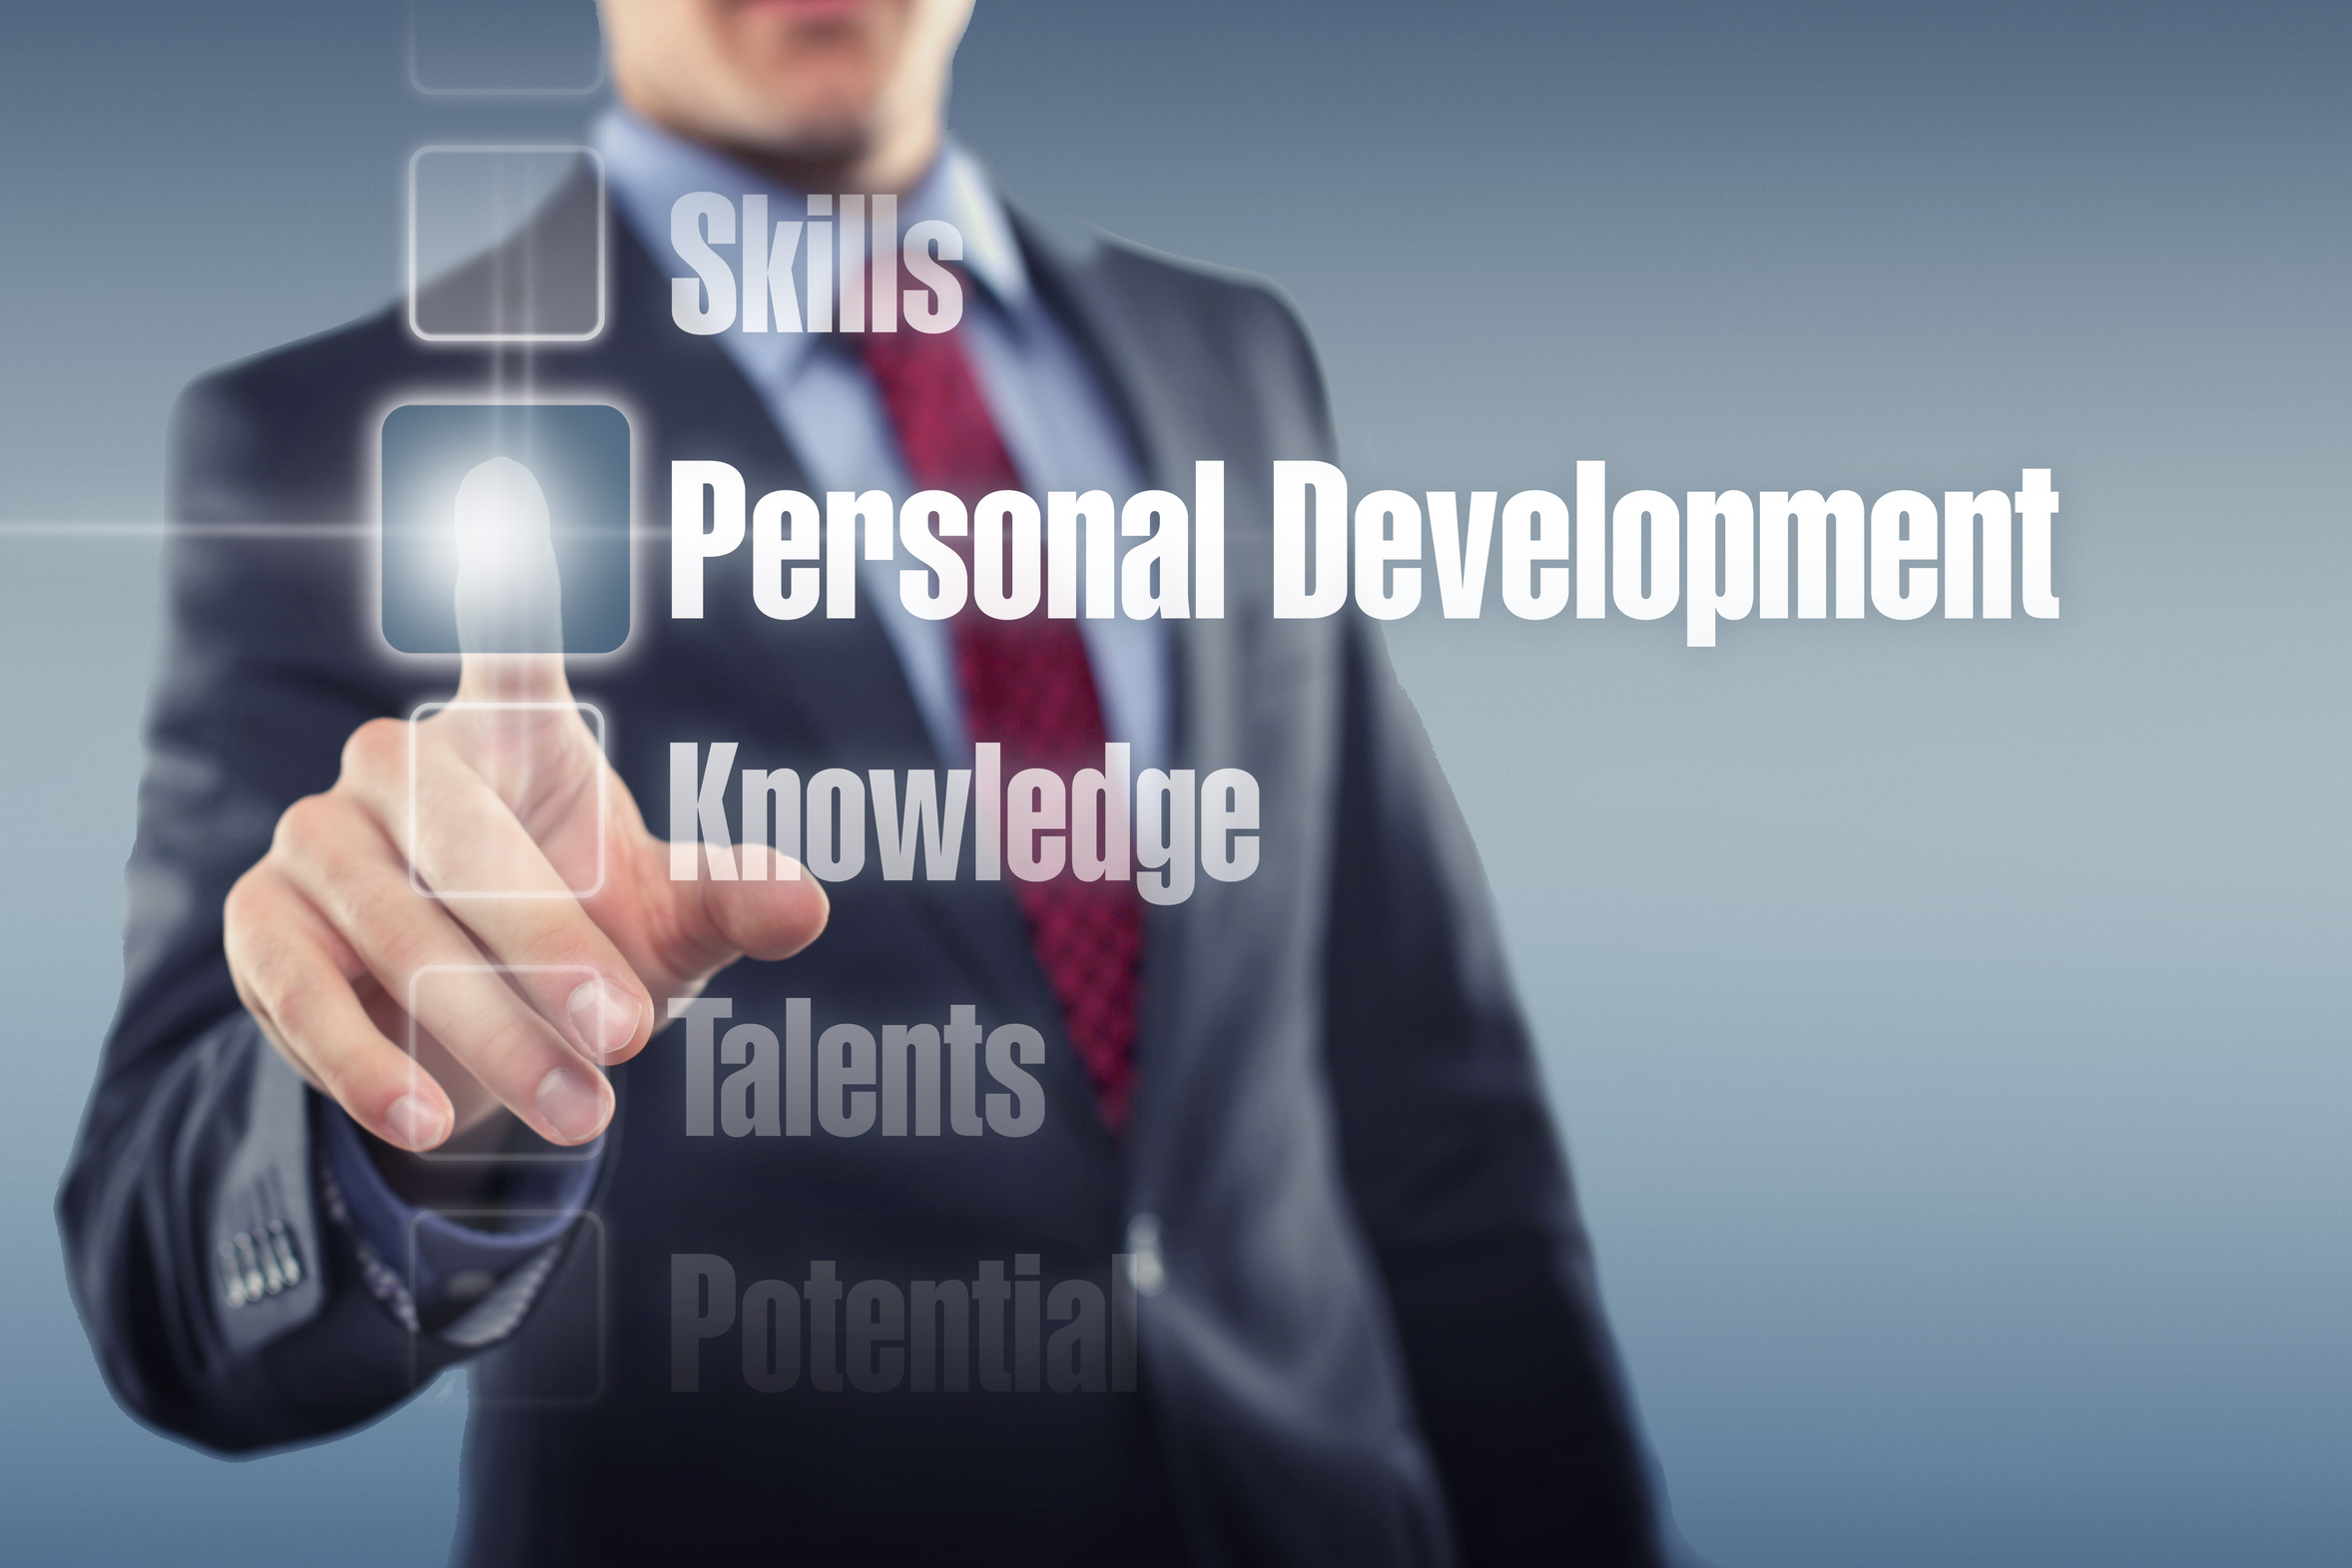 personal development Learn about personal development in this topic from the free management library.